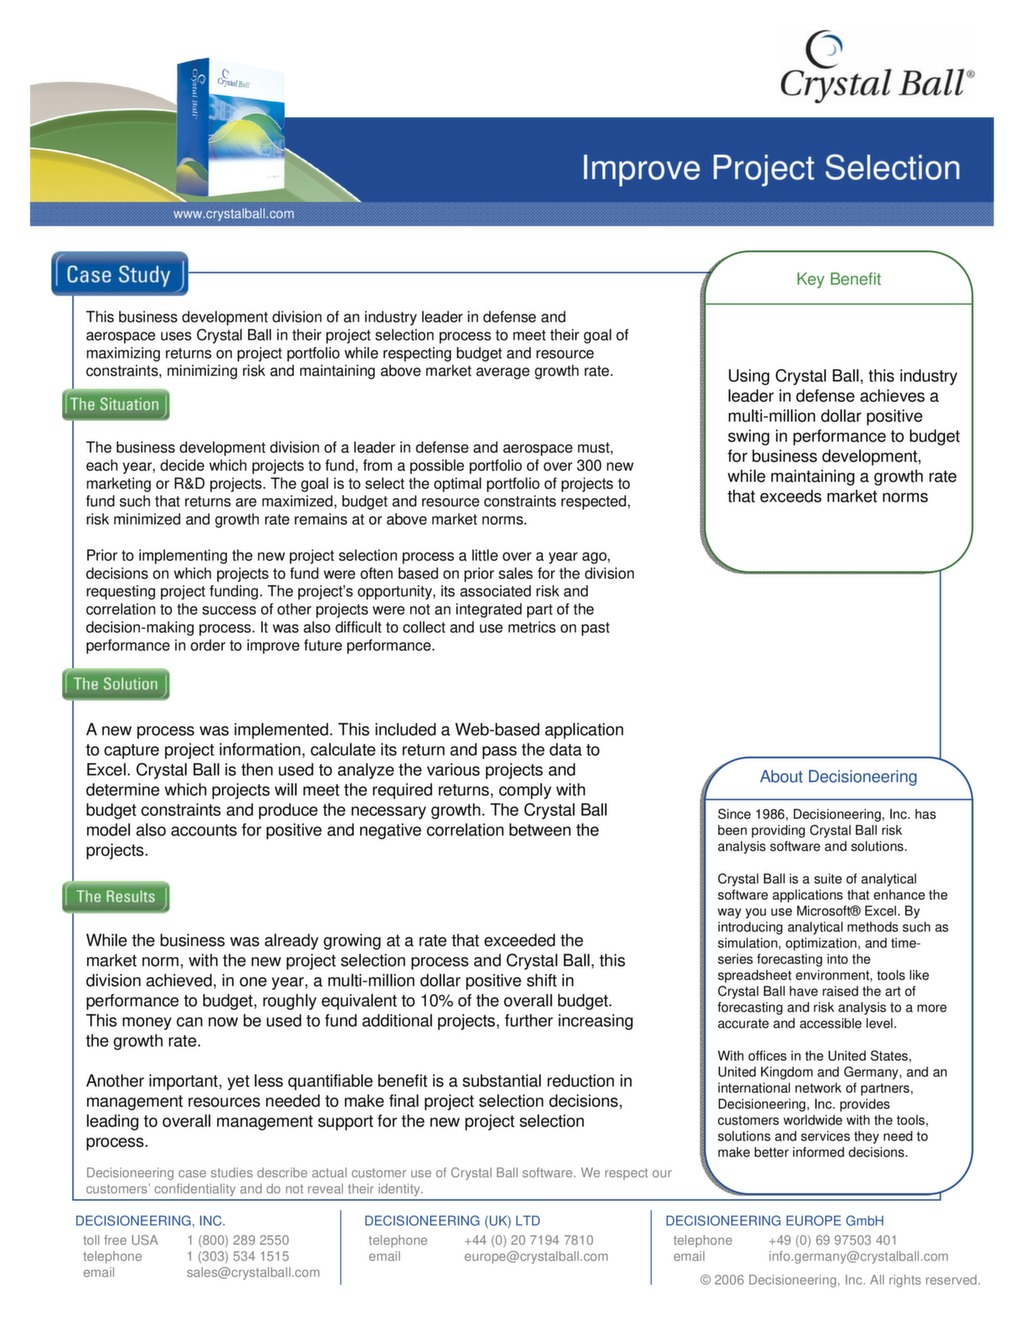 Case Study: Improve Project Selection — ISSSP for Lean Six Sigma